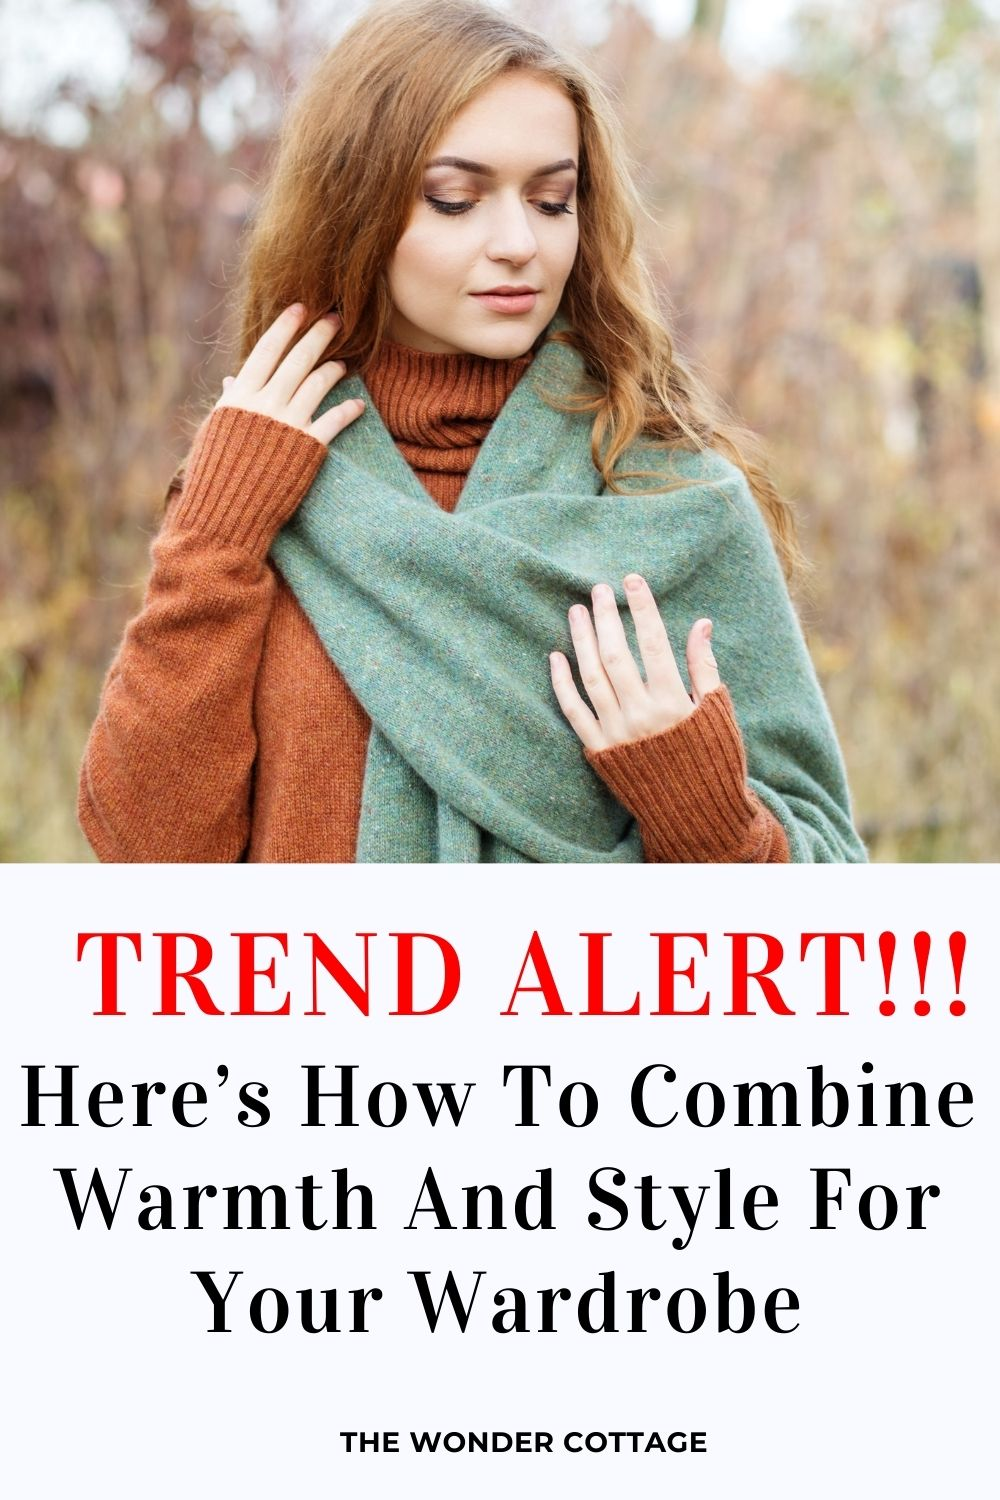 Trend Alert- Here's How To Combine Warmth And Style For Your Wardrobe